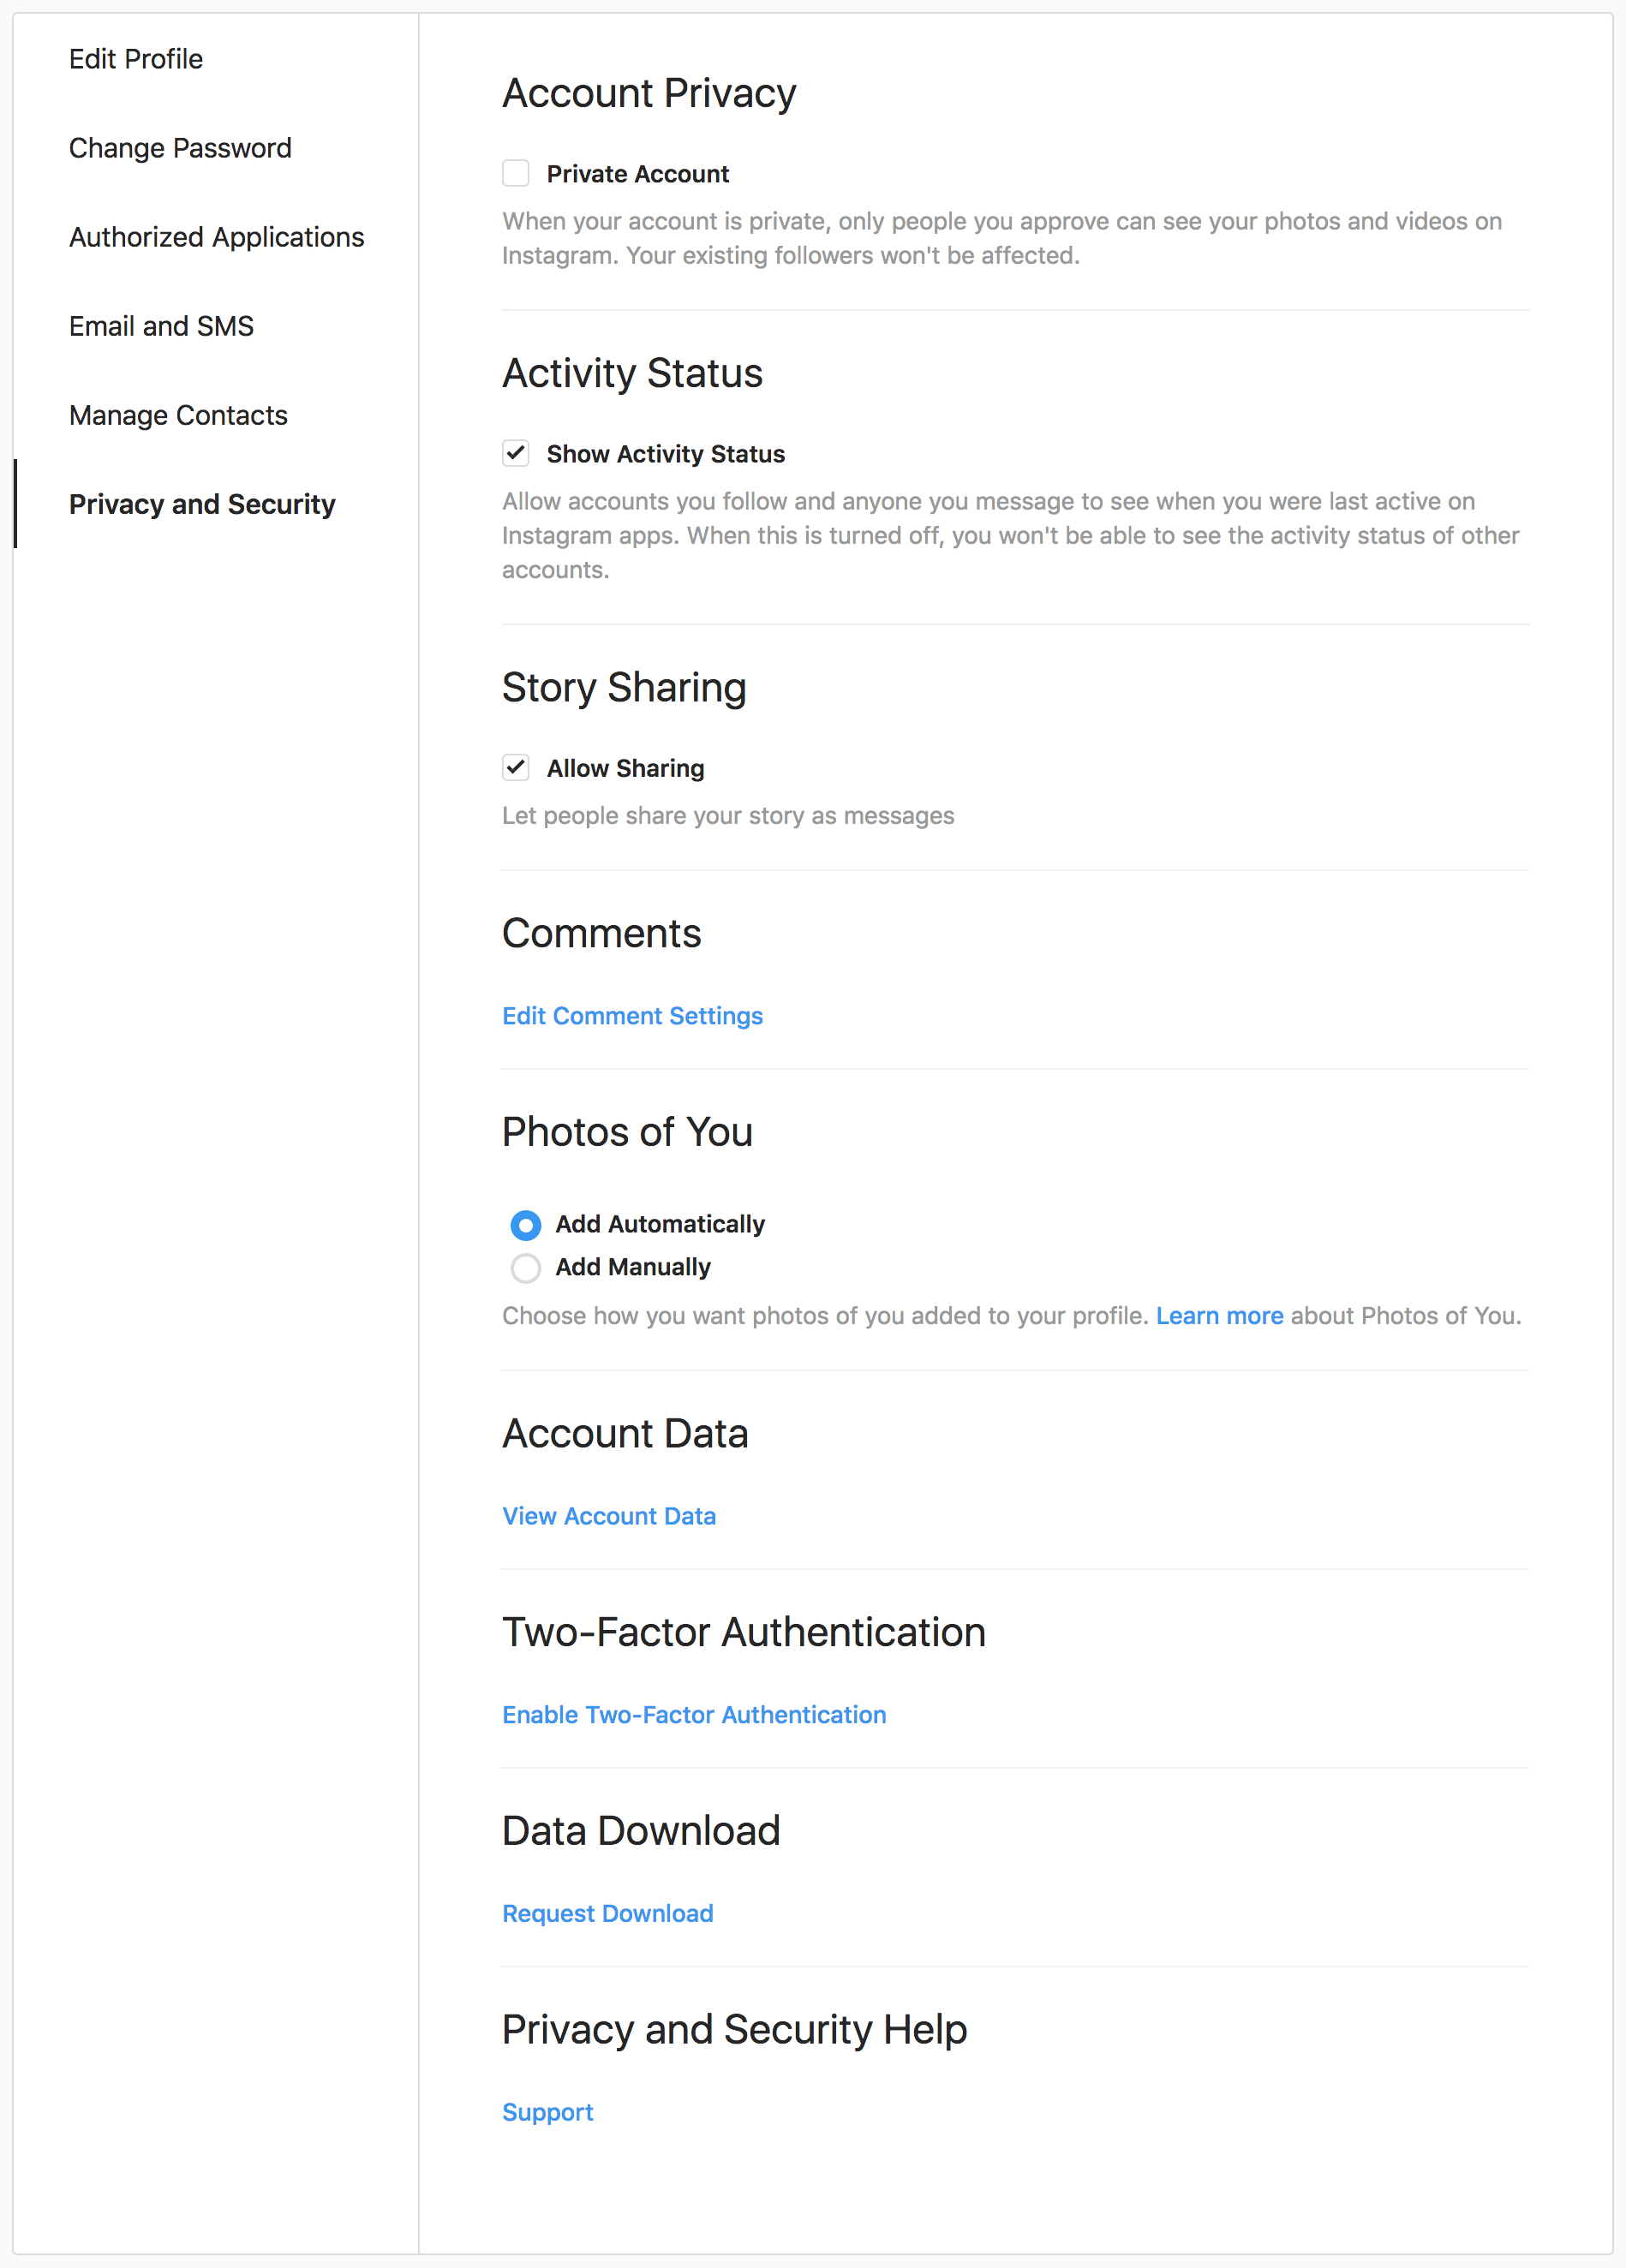 GDPR User Interfaces by Etsy, Twitter, Instagram - Bart